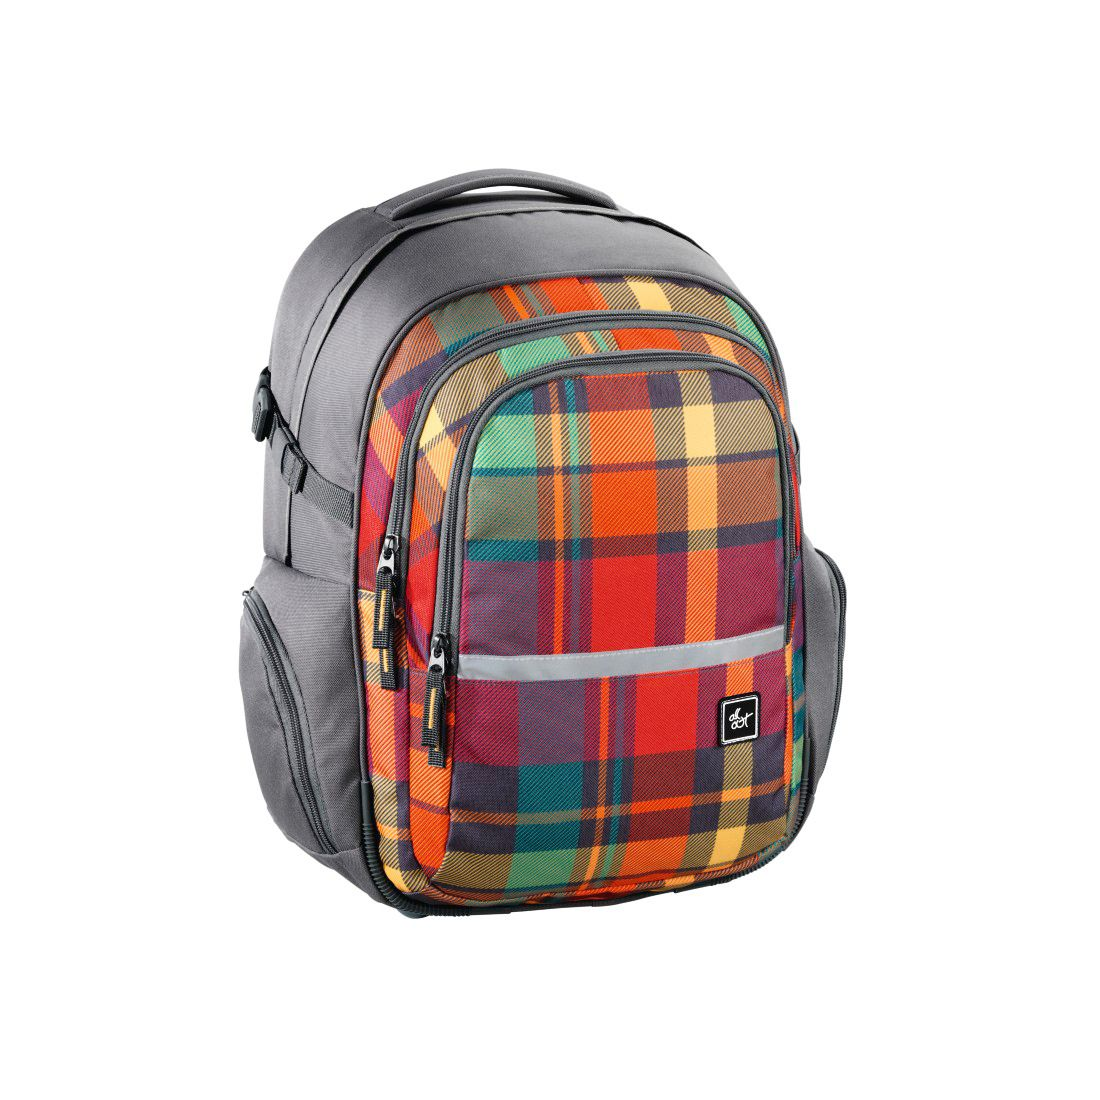 ALL OUT All Out Rucksack Filby, Woody Orange